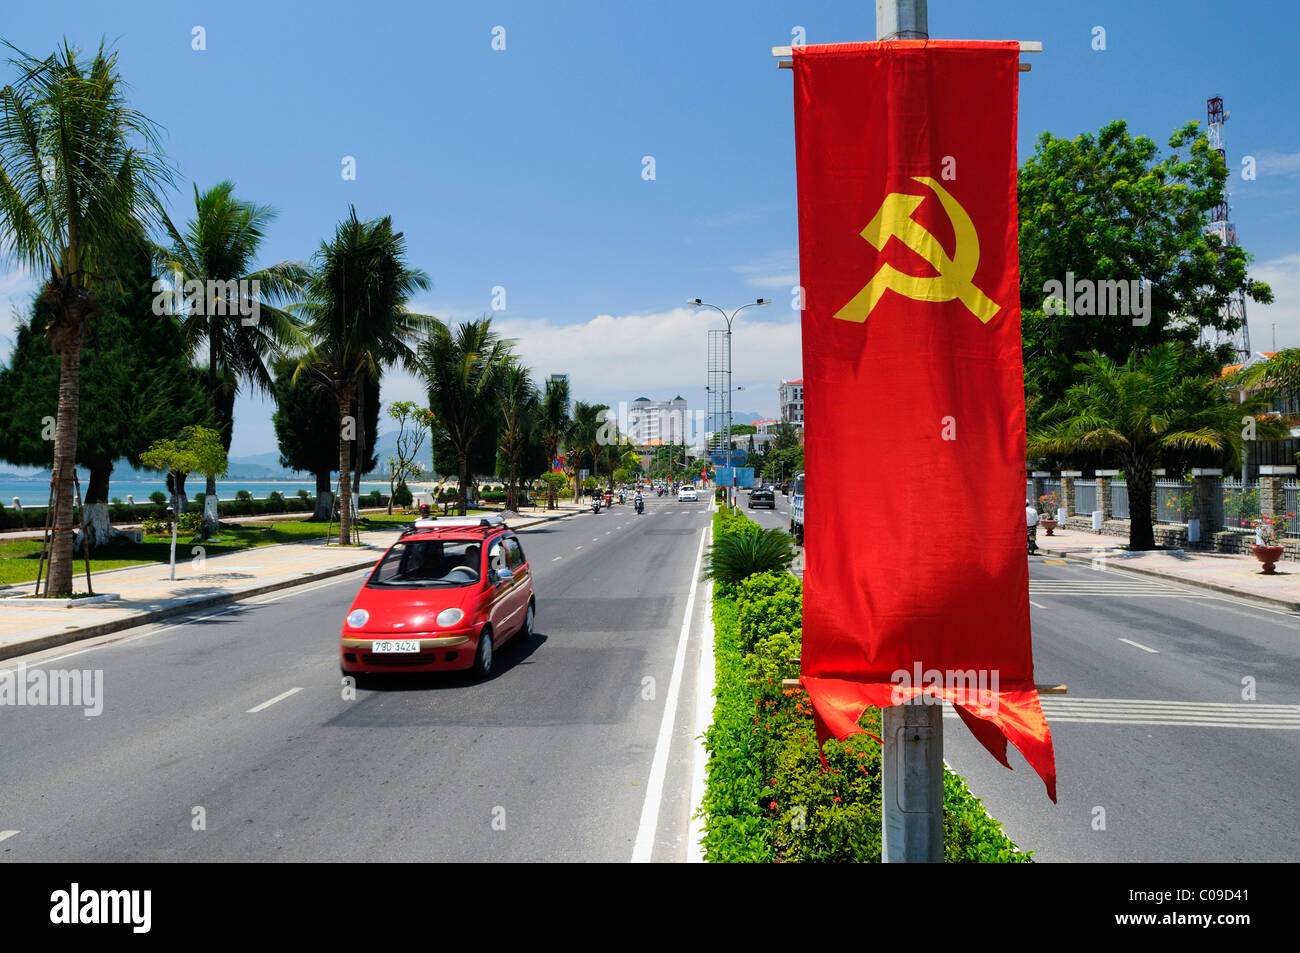 Main street of Nha Trang with communist flag, Vietnam, Southeast Asia - Stock Image